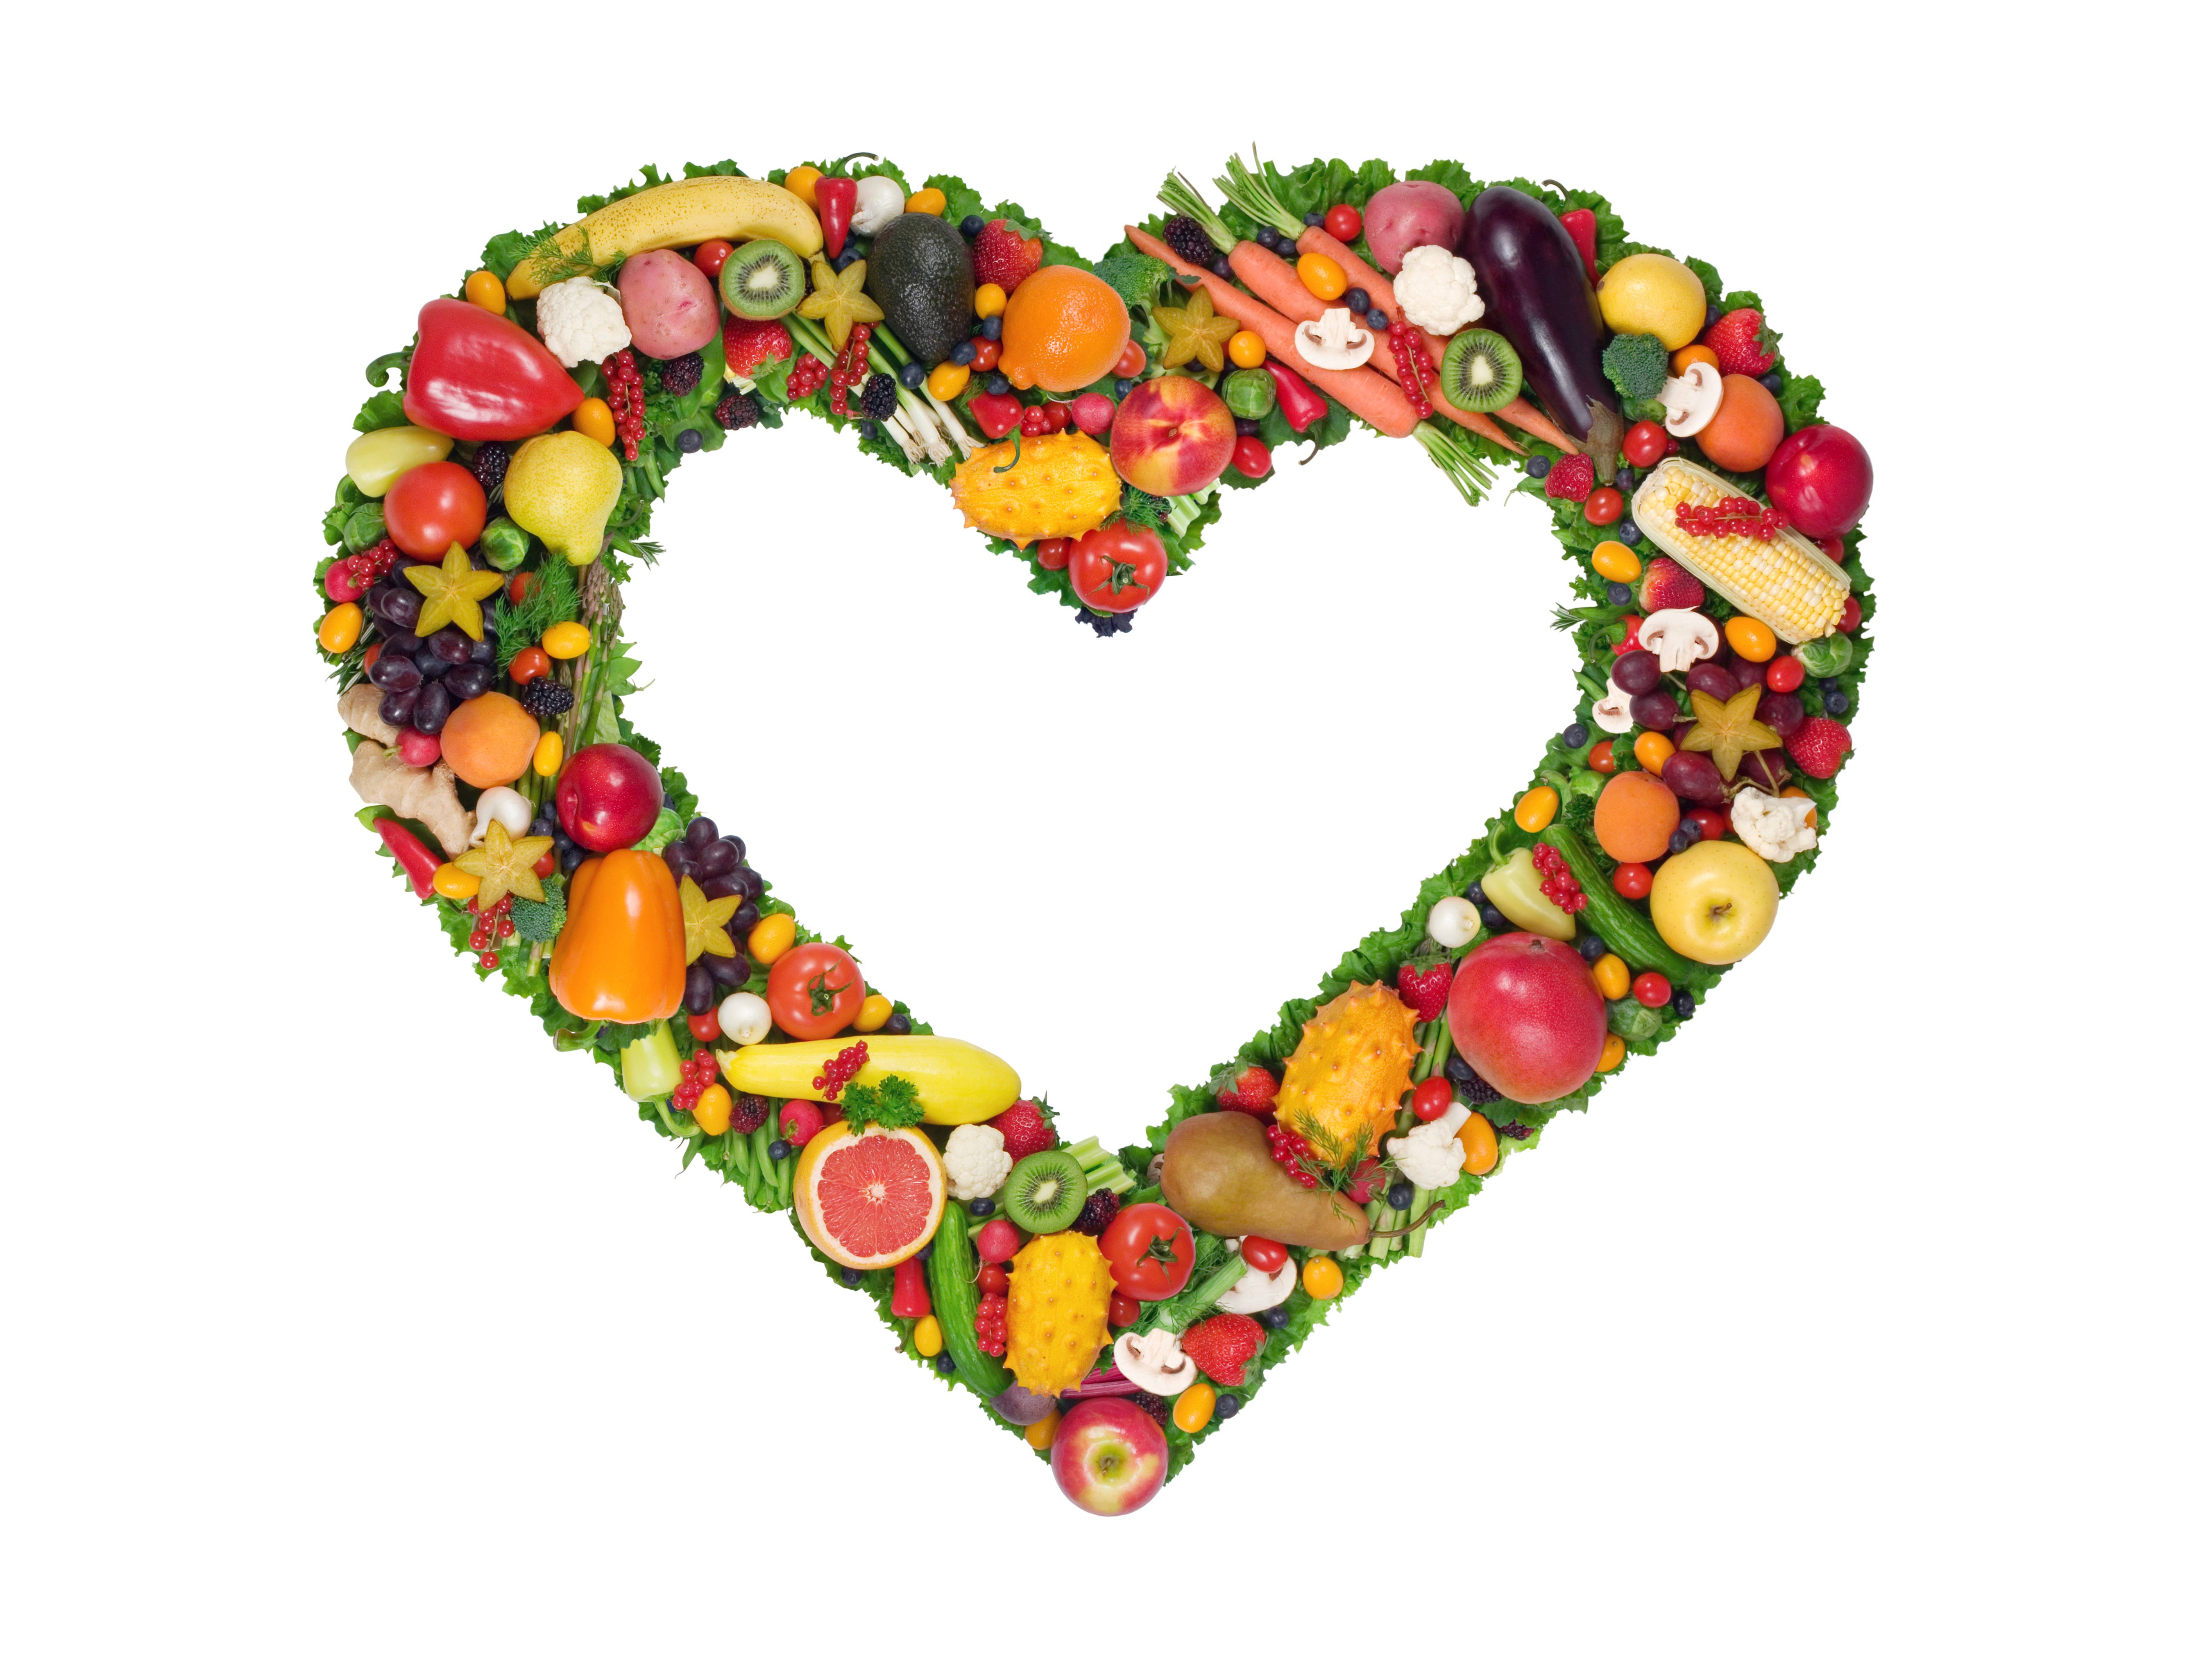 Give your body the anti-cancer, anti-heart disease signal